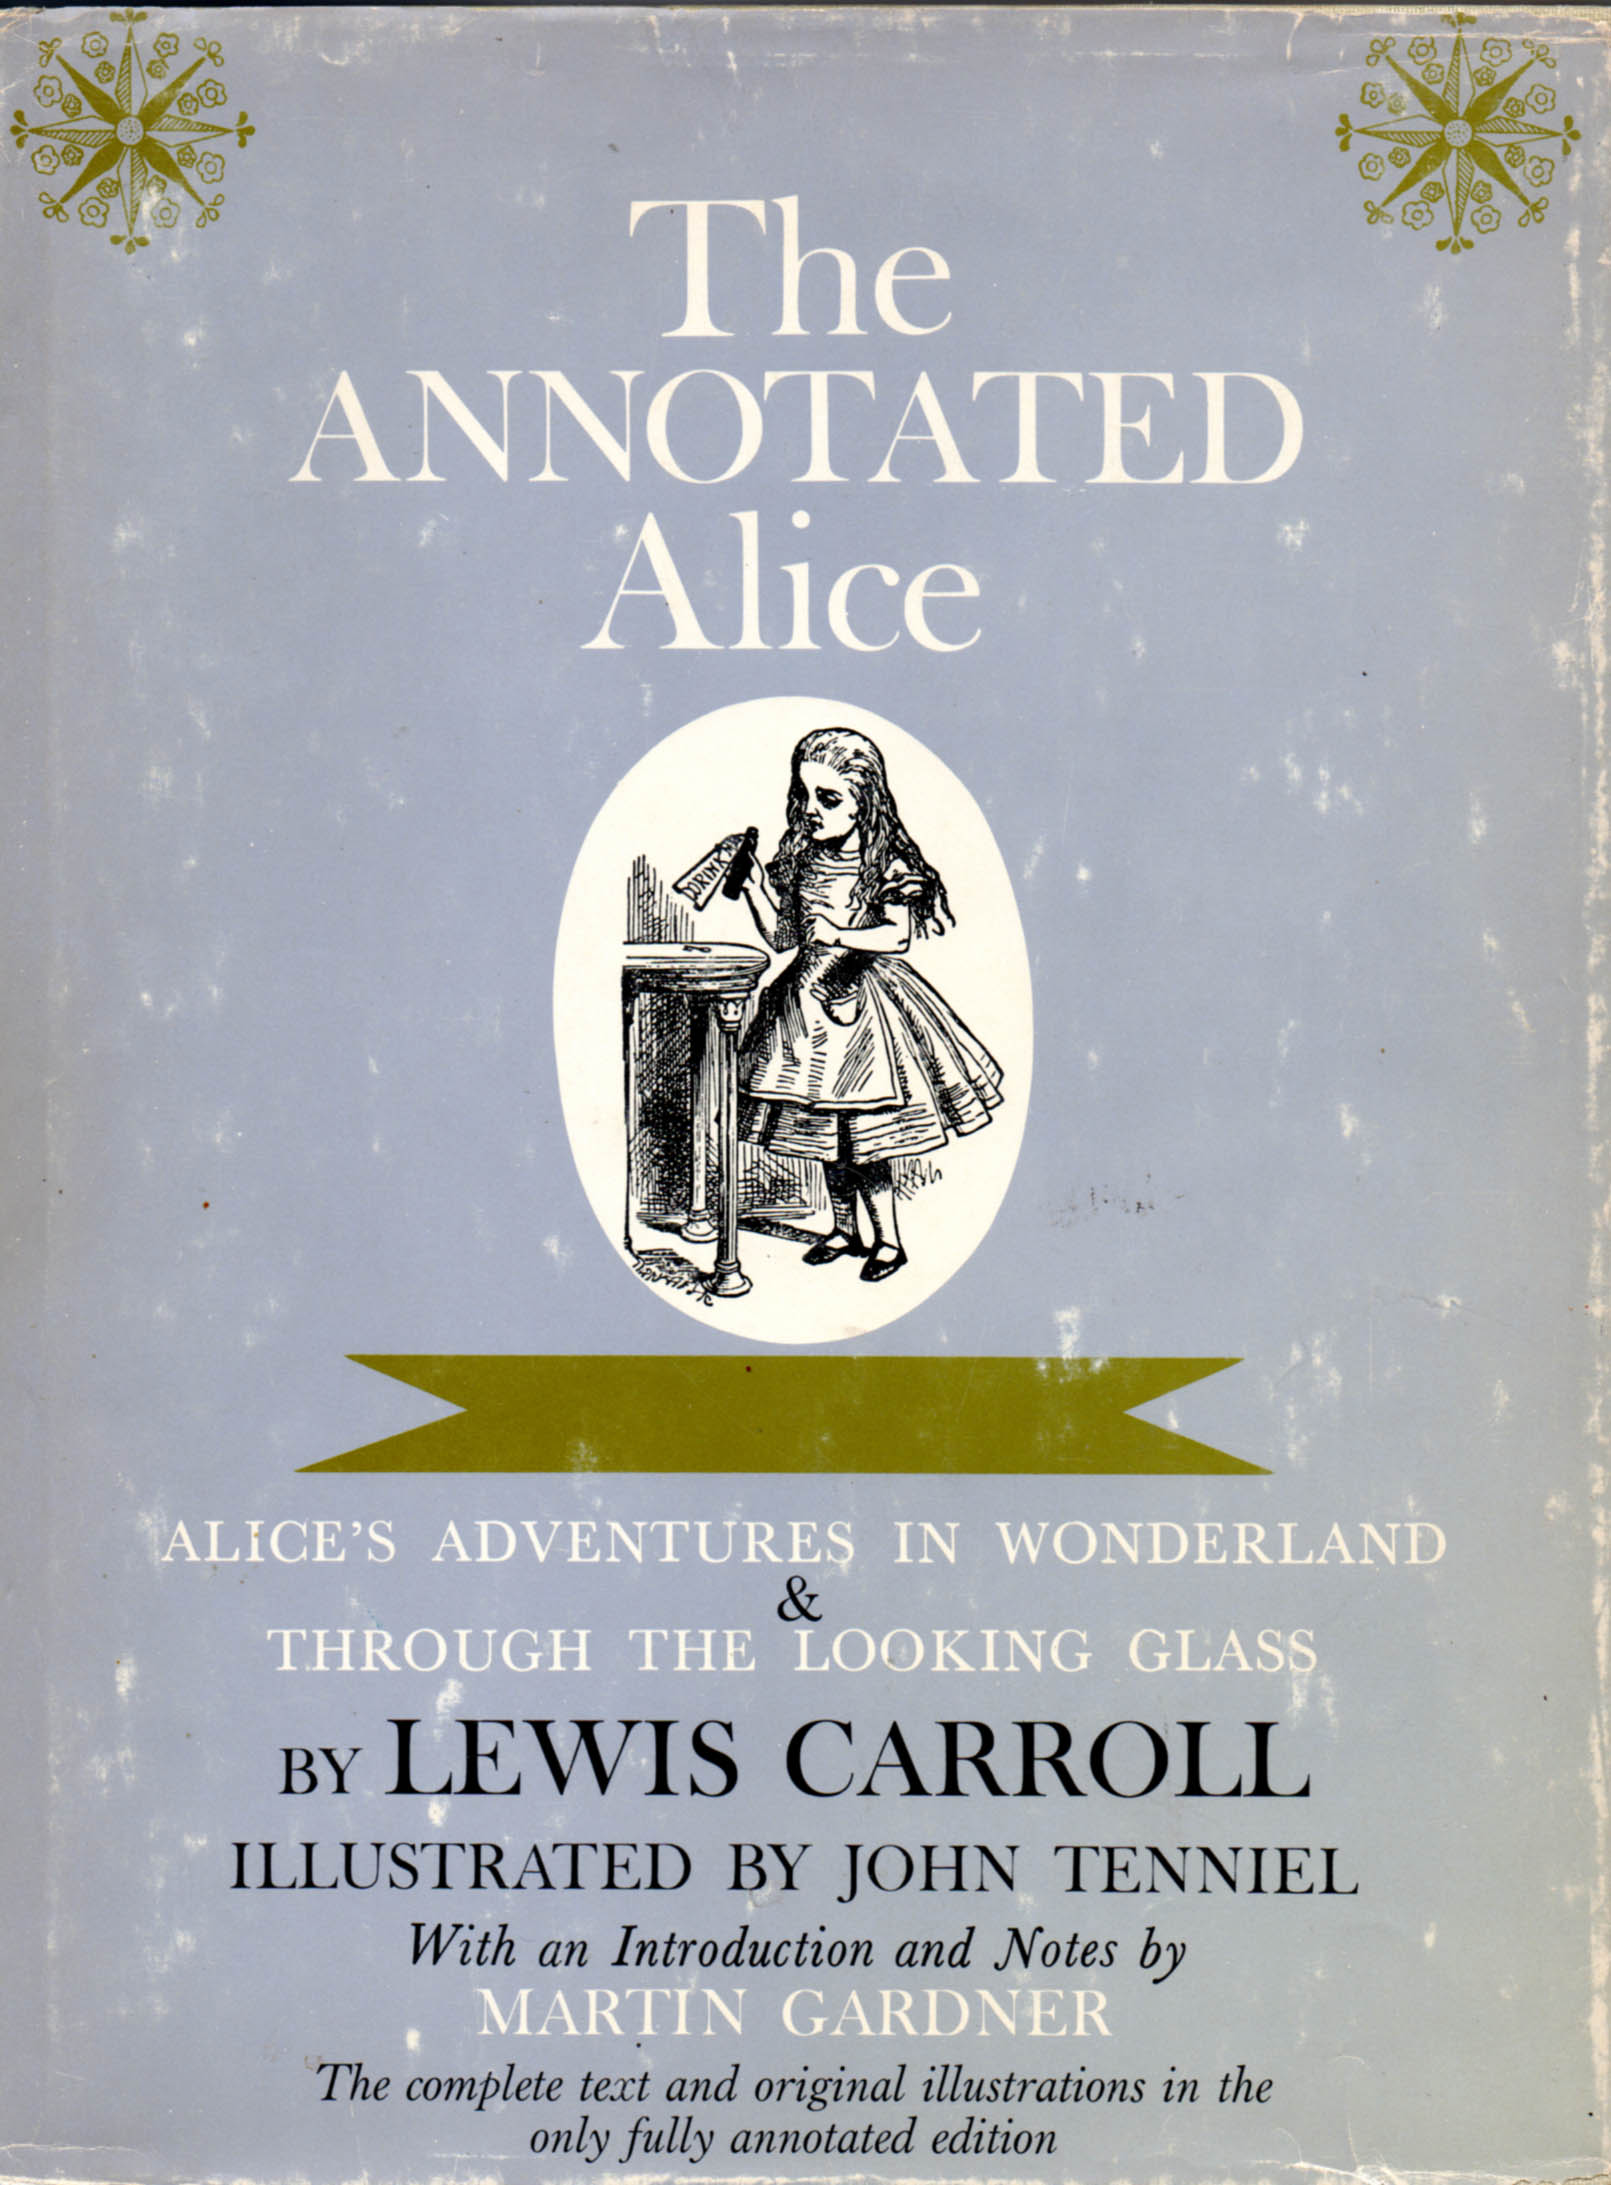 The Annotated Alice (1960)